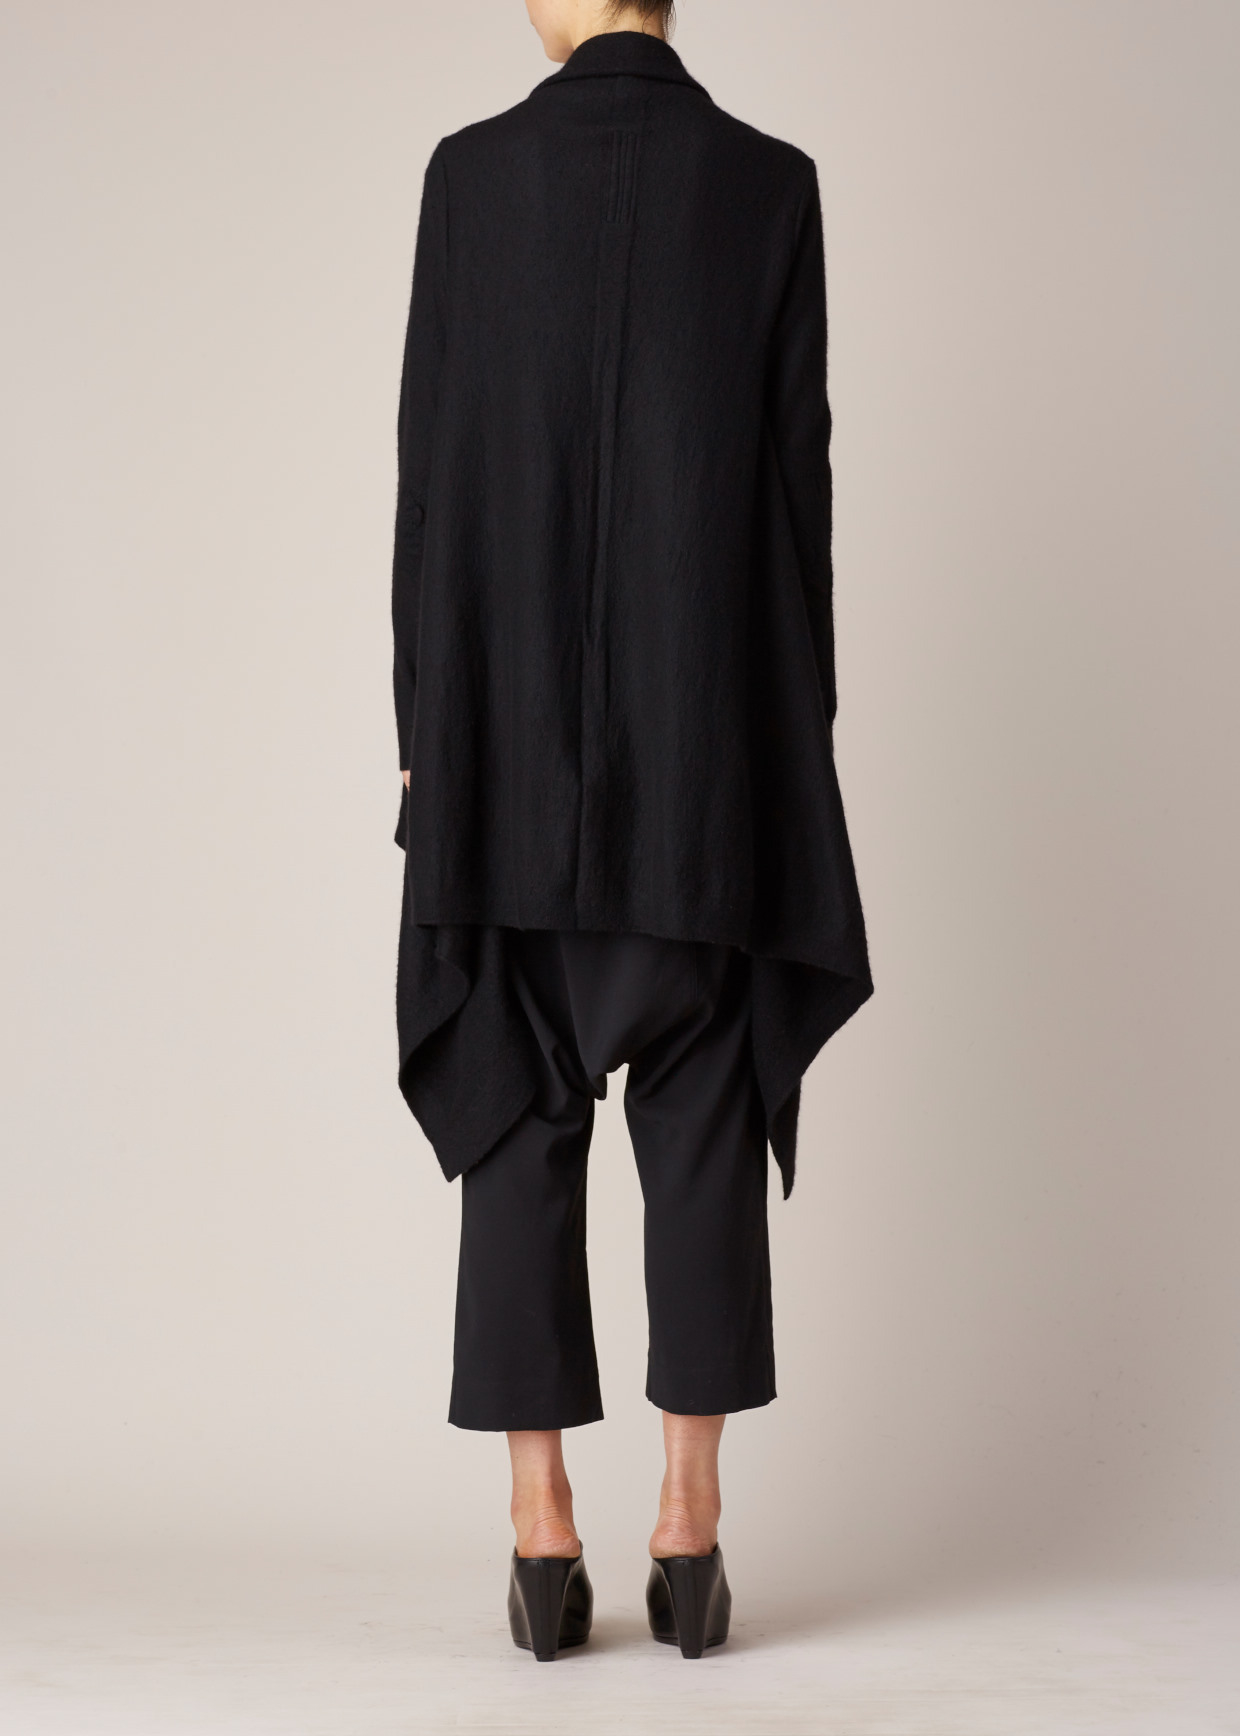 Rick owens Black Men's Cashmere Wrap Cardigan in Black | Lyst